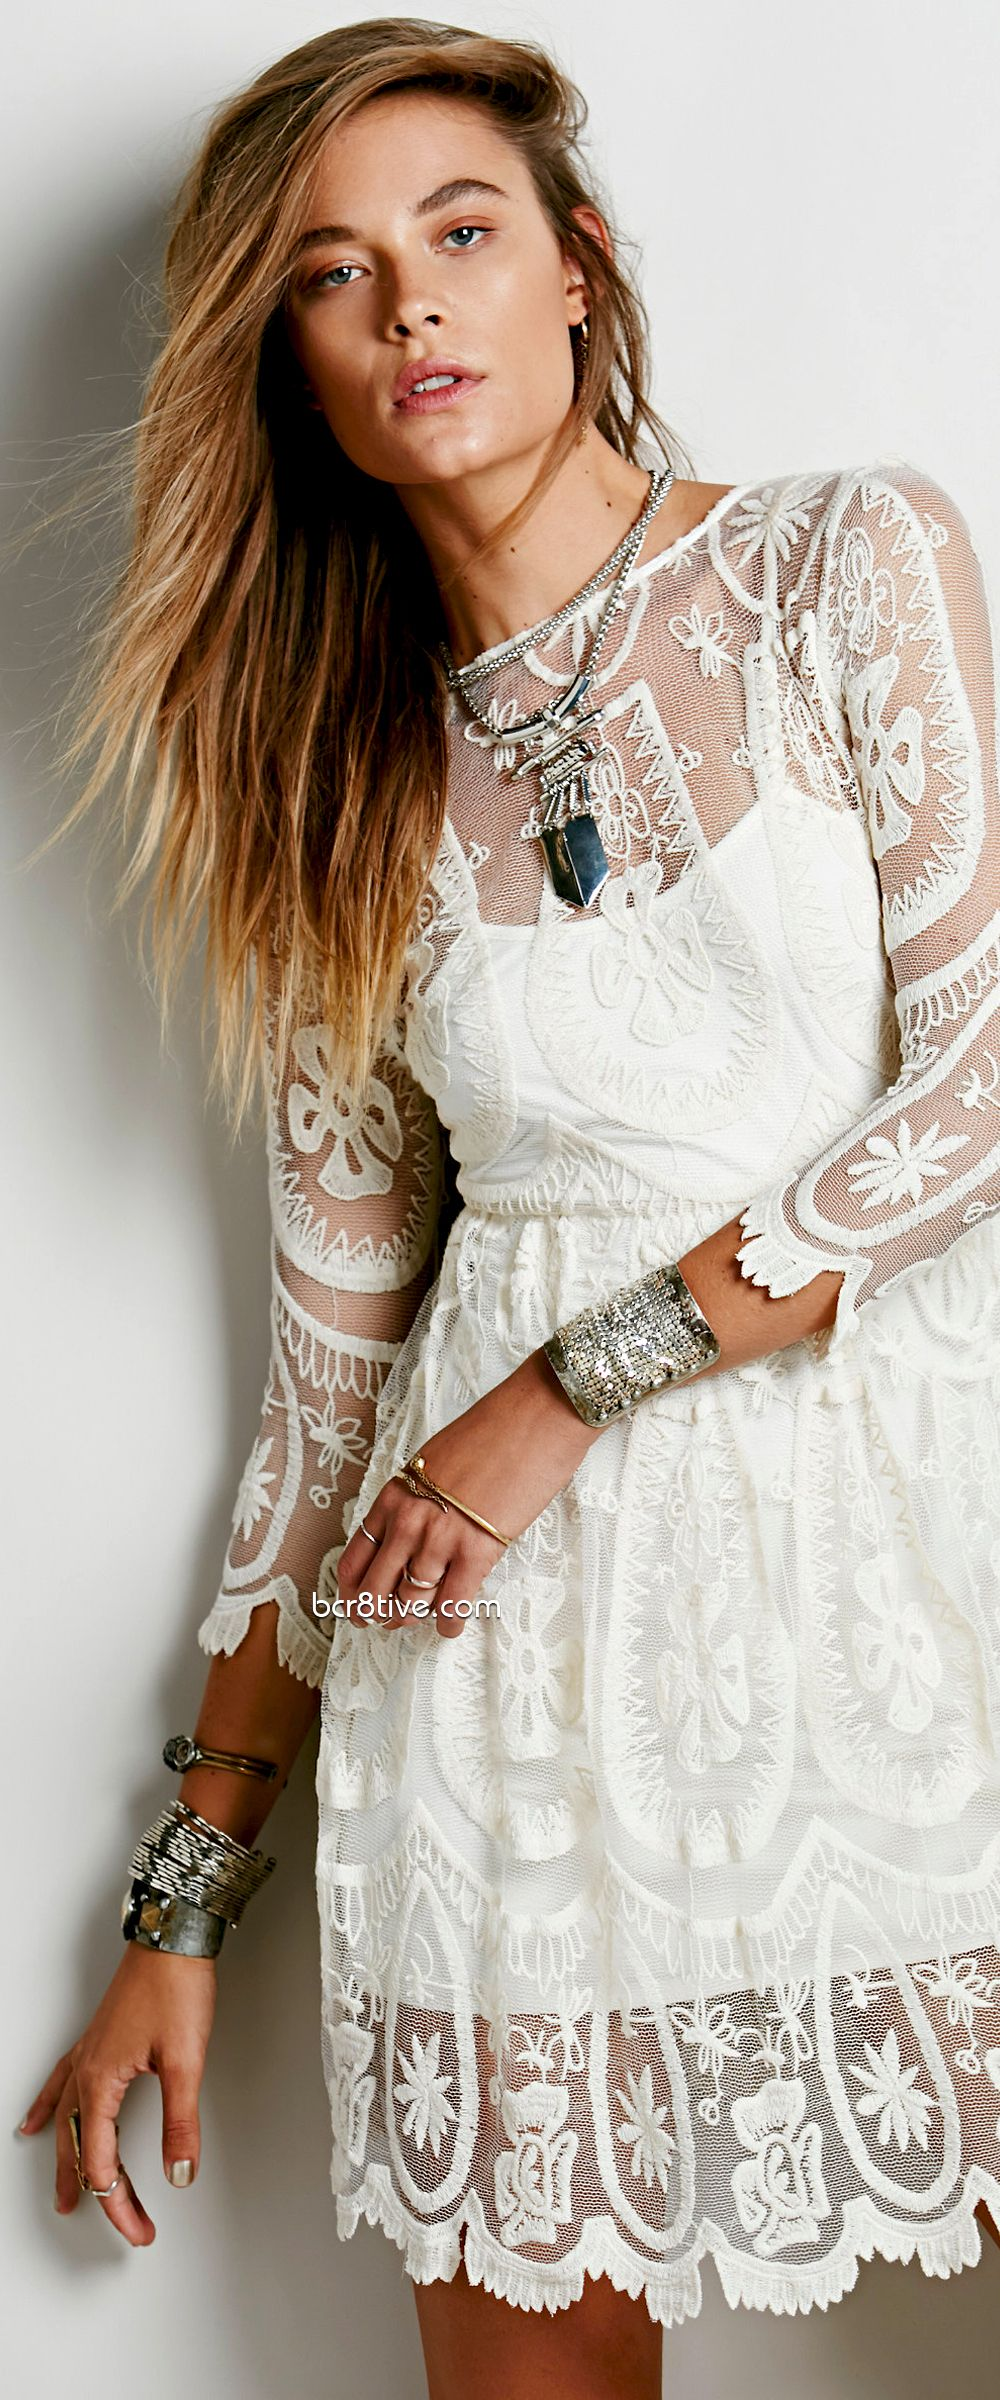 Letus shop shopping boho and retail therapy